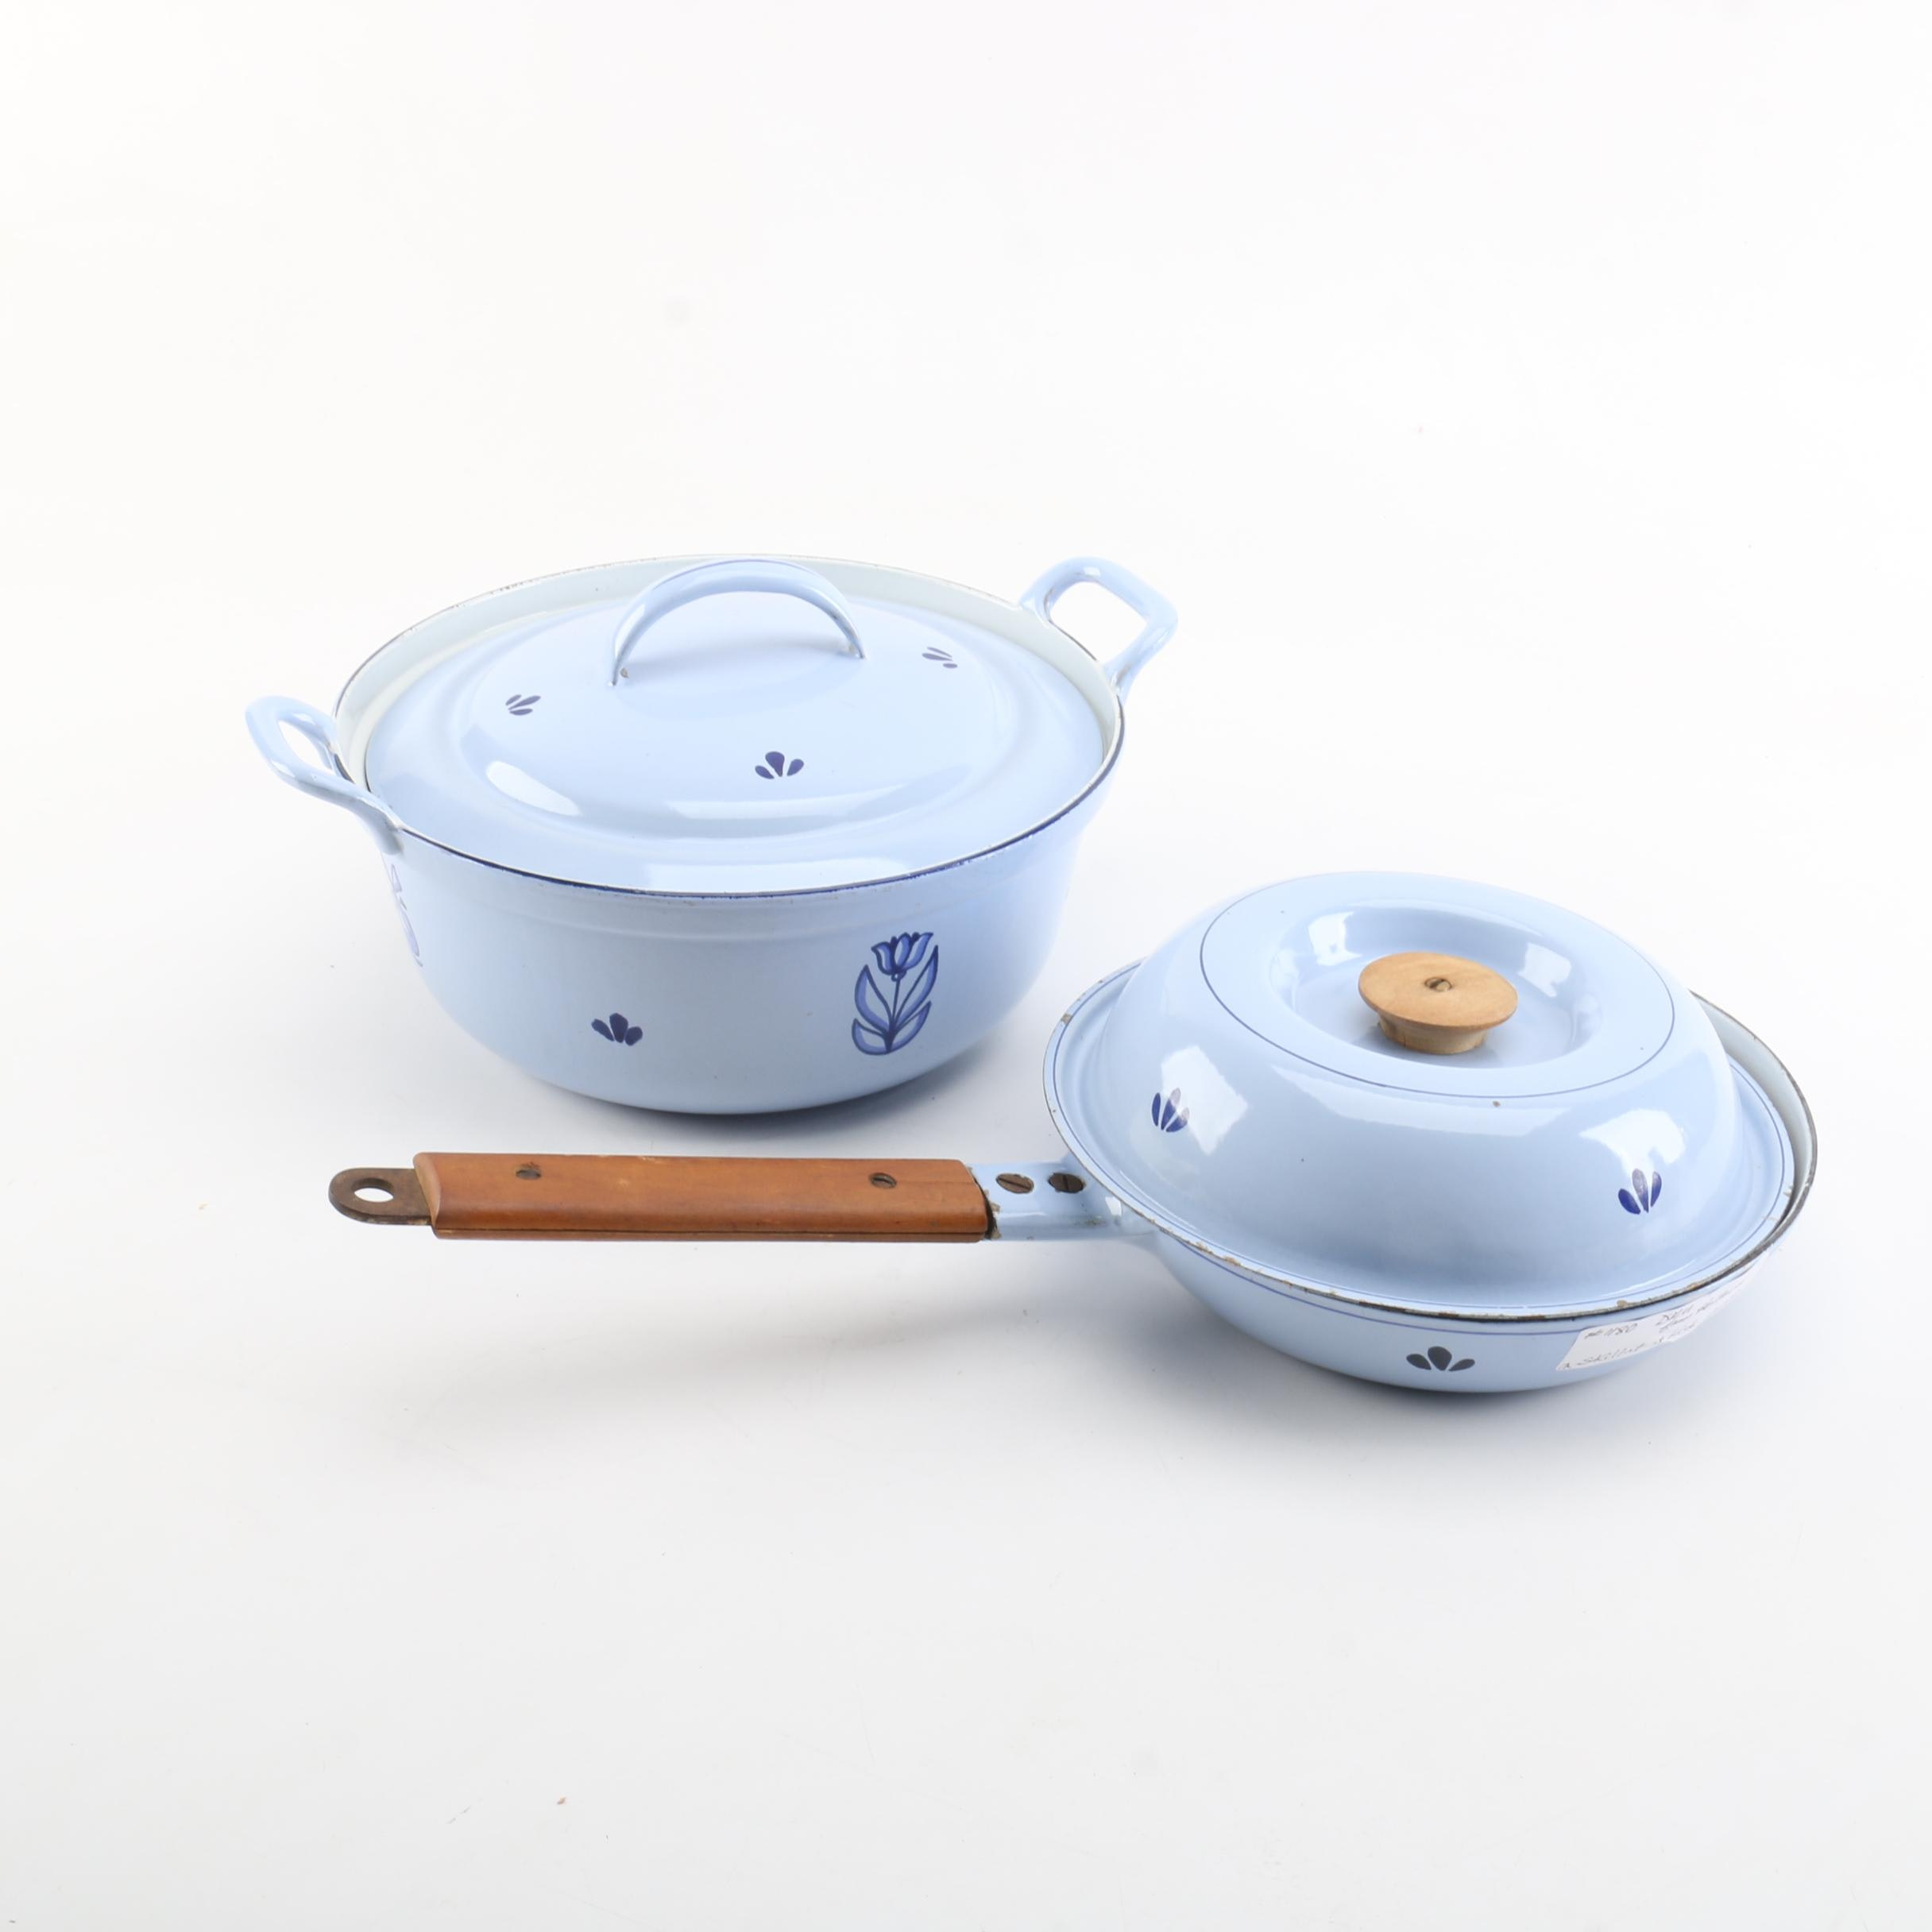 DRU Holland Enameled Cast Iron Cookware